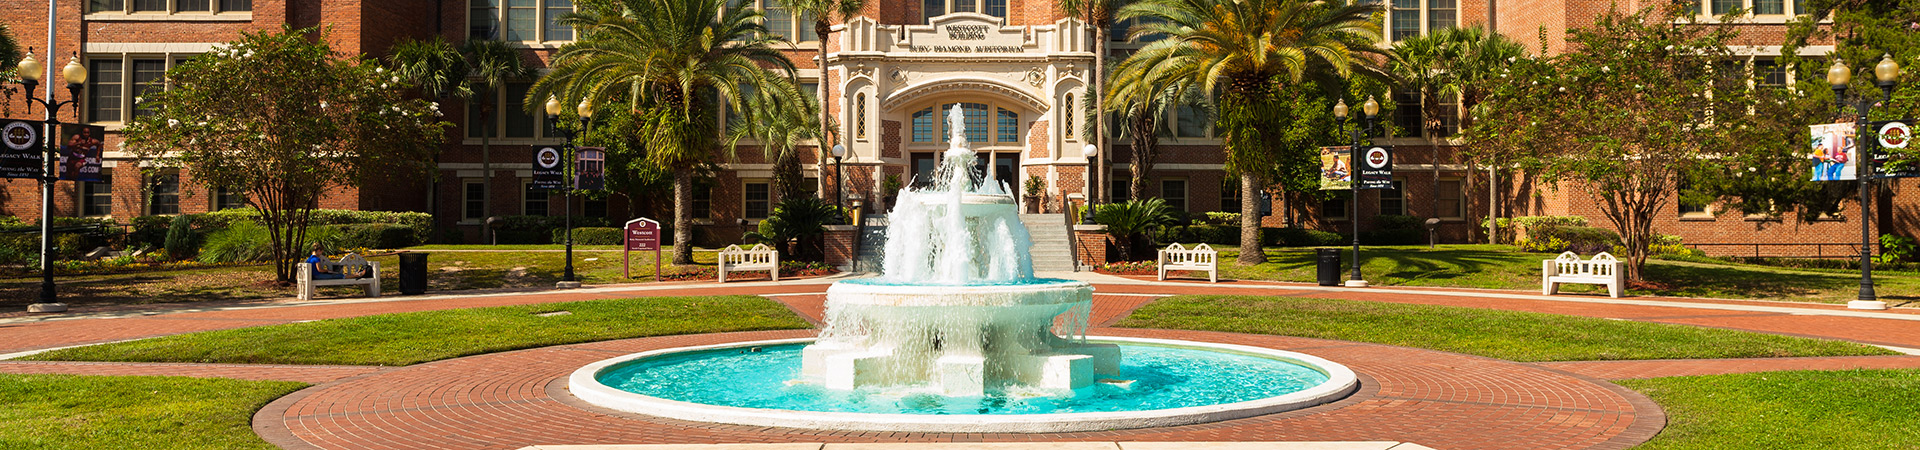 Westcott fountain at Florida State University